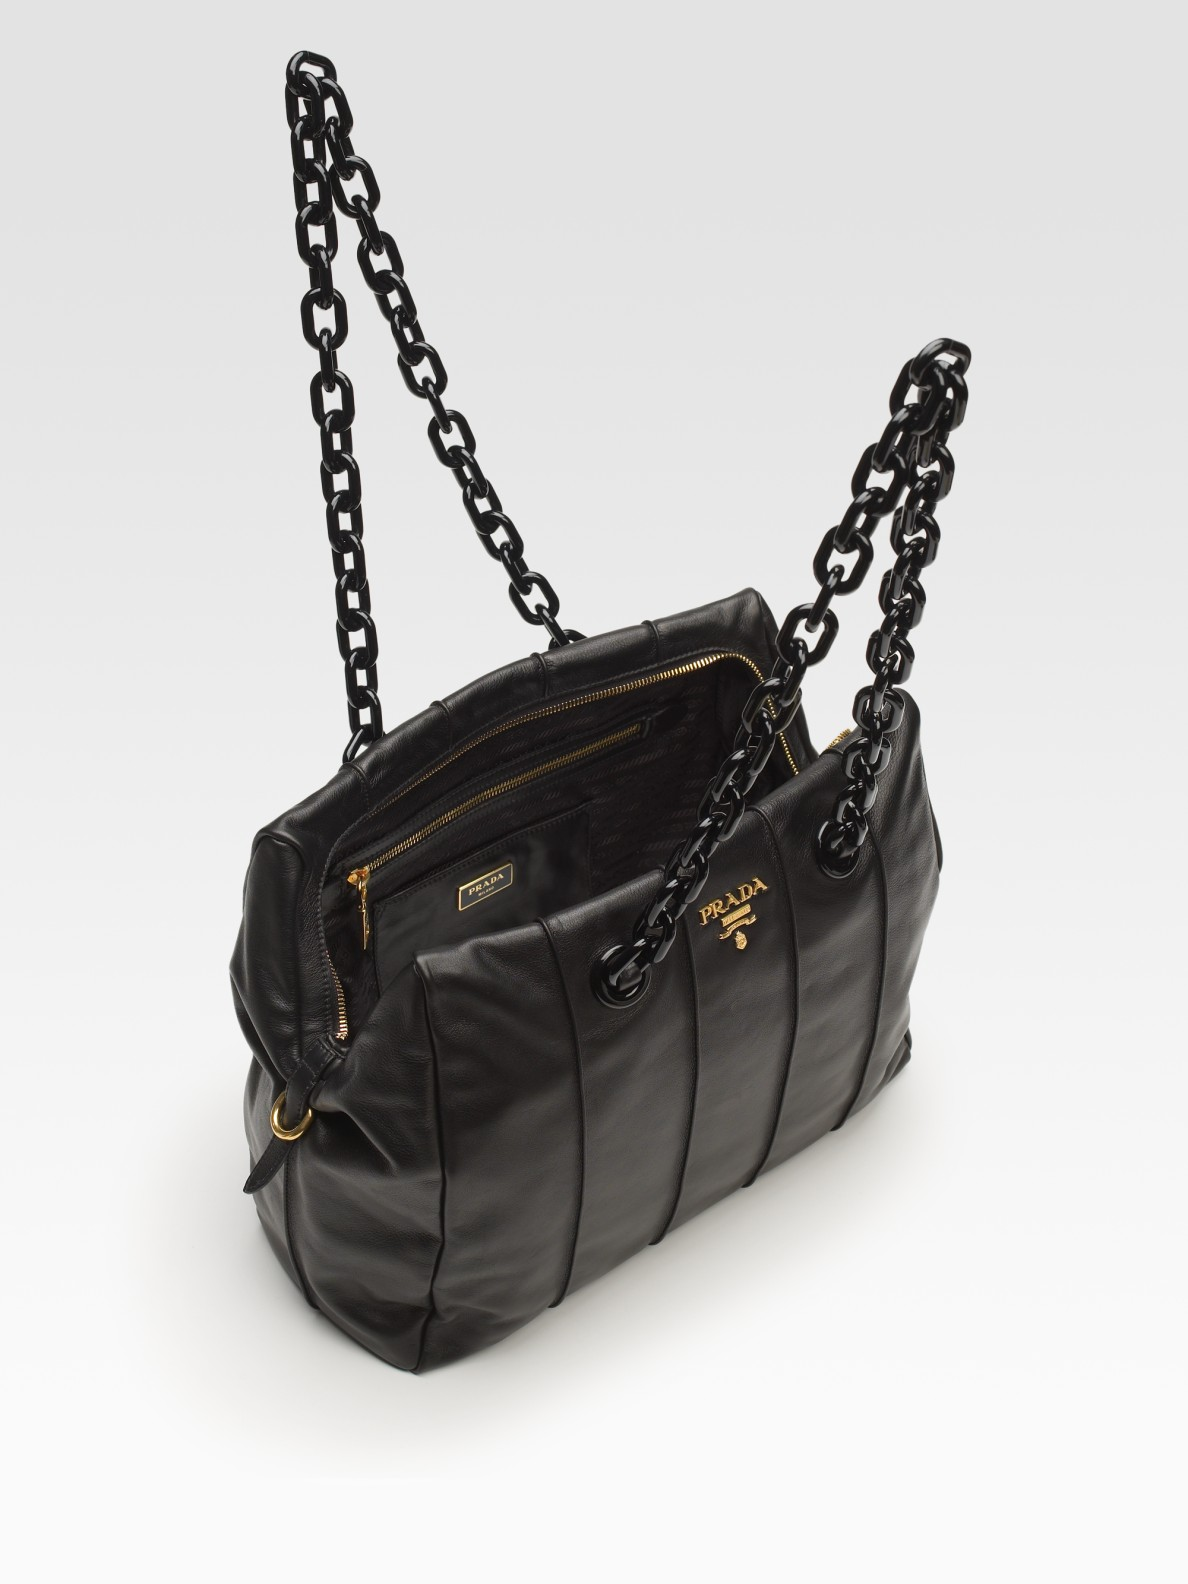 eecab49d5789 good lyst prada soft calf chain bag in black 3bbad d2861